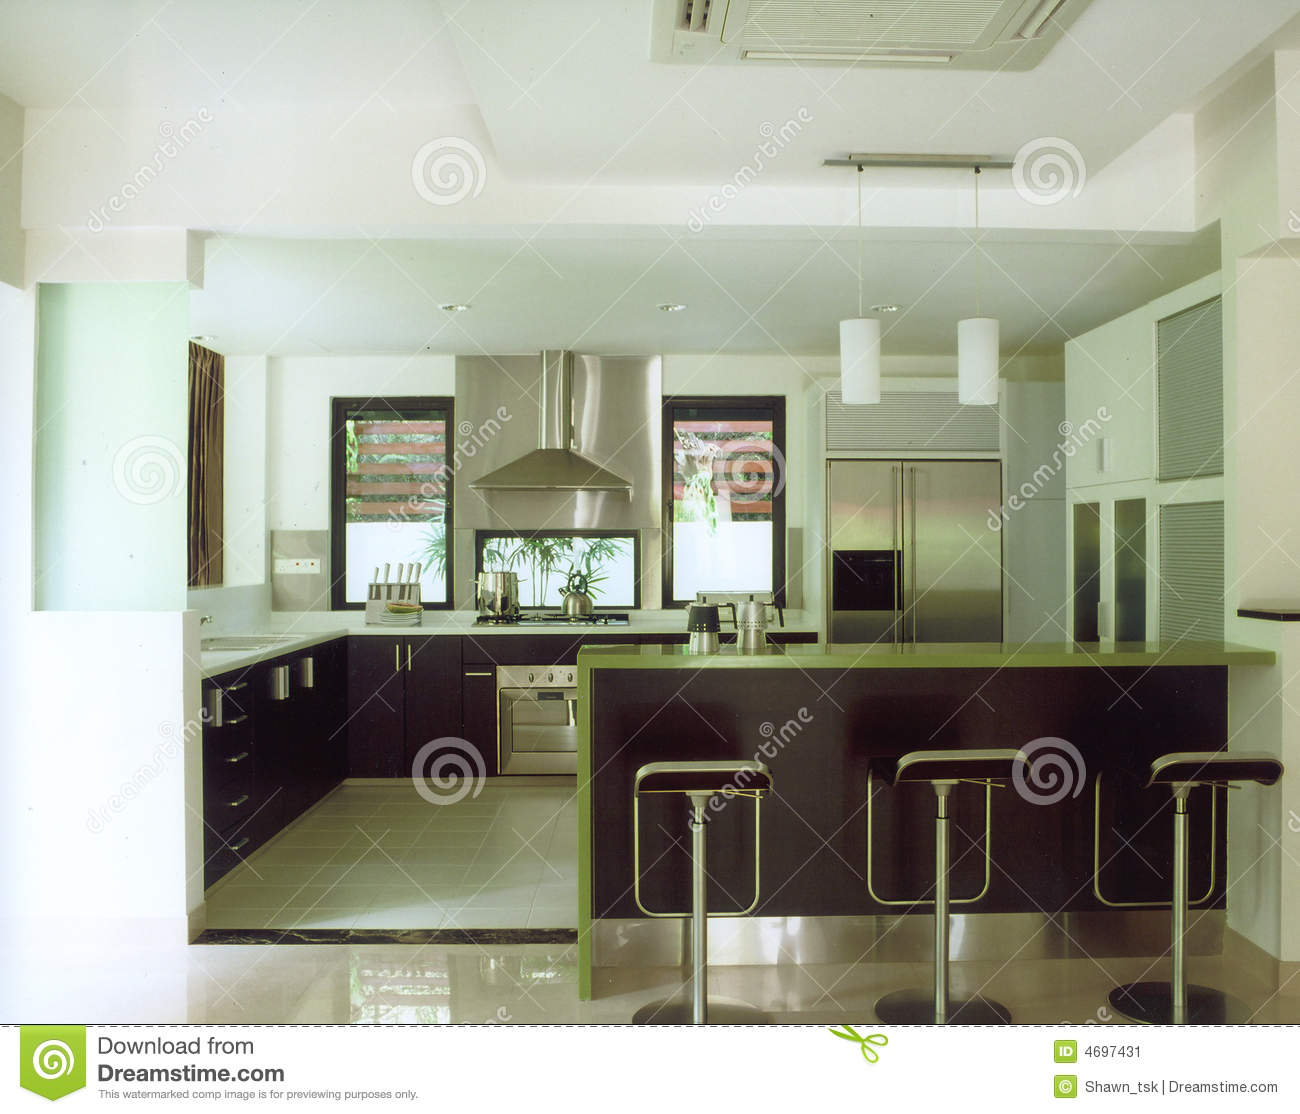 Dry And Wet Kitchen Design Photos: Dry Kitchen Stock Image. Image Of Contemporary, Interior